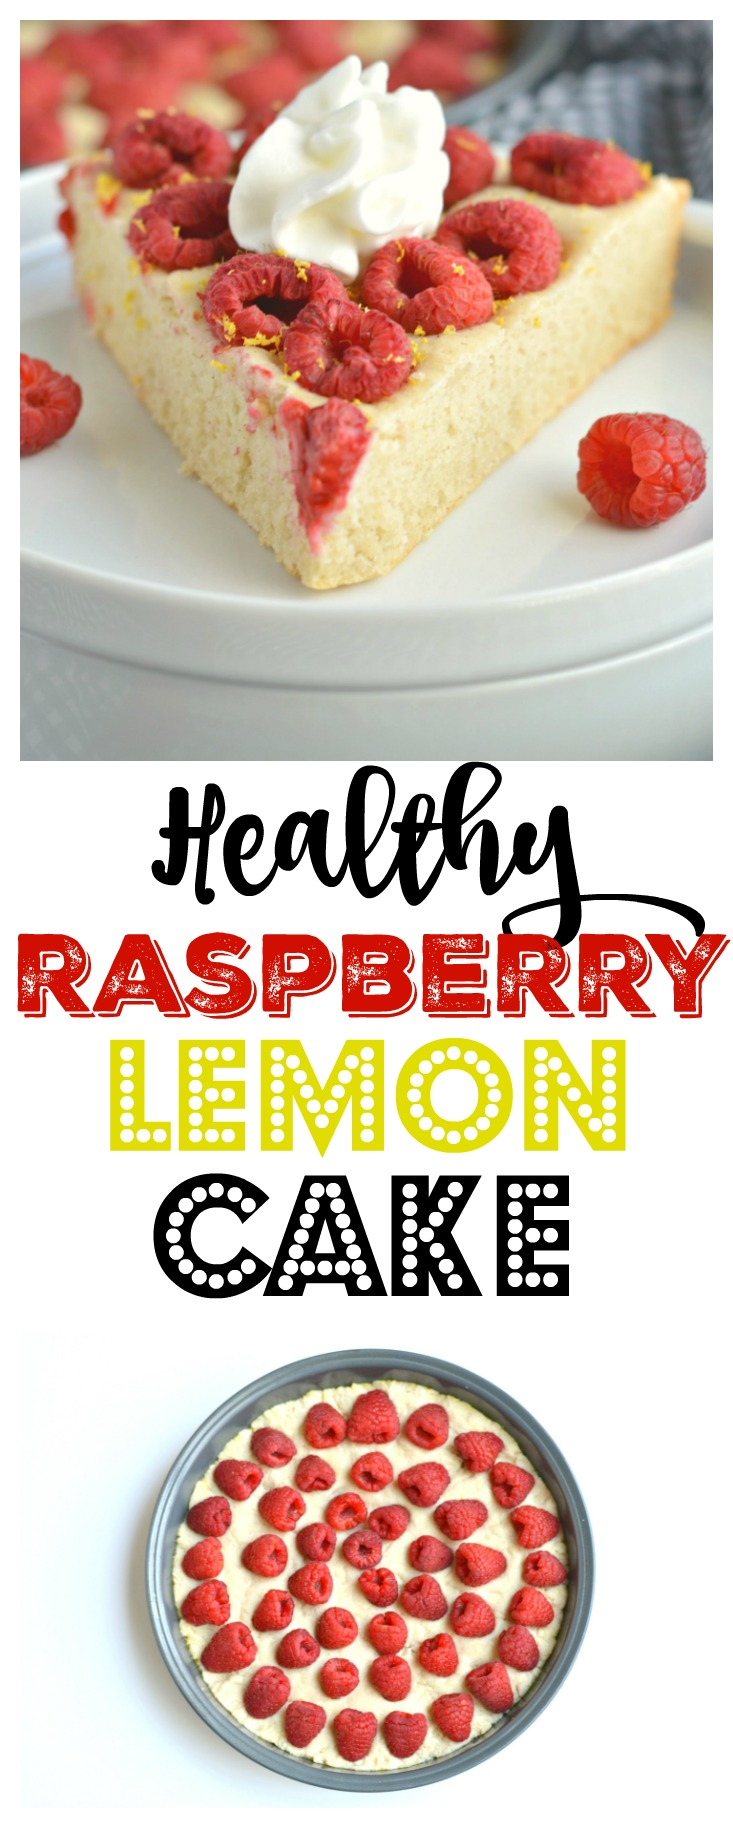 Healthy Raspberry Lemon Cake made with tart lemon juice, Greek yogurt, rings of sweet raspberries and no refined sugar! This elegant cake isthe perfect balance ofsweet and tart. A fancy dessert with no guilt! Gluten Free + Low Calorie